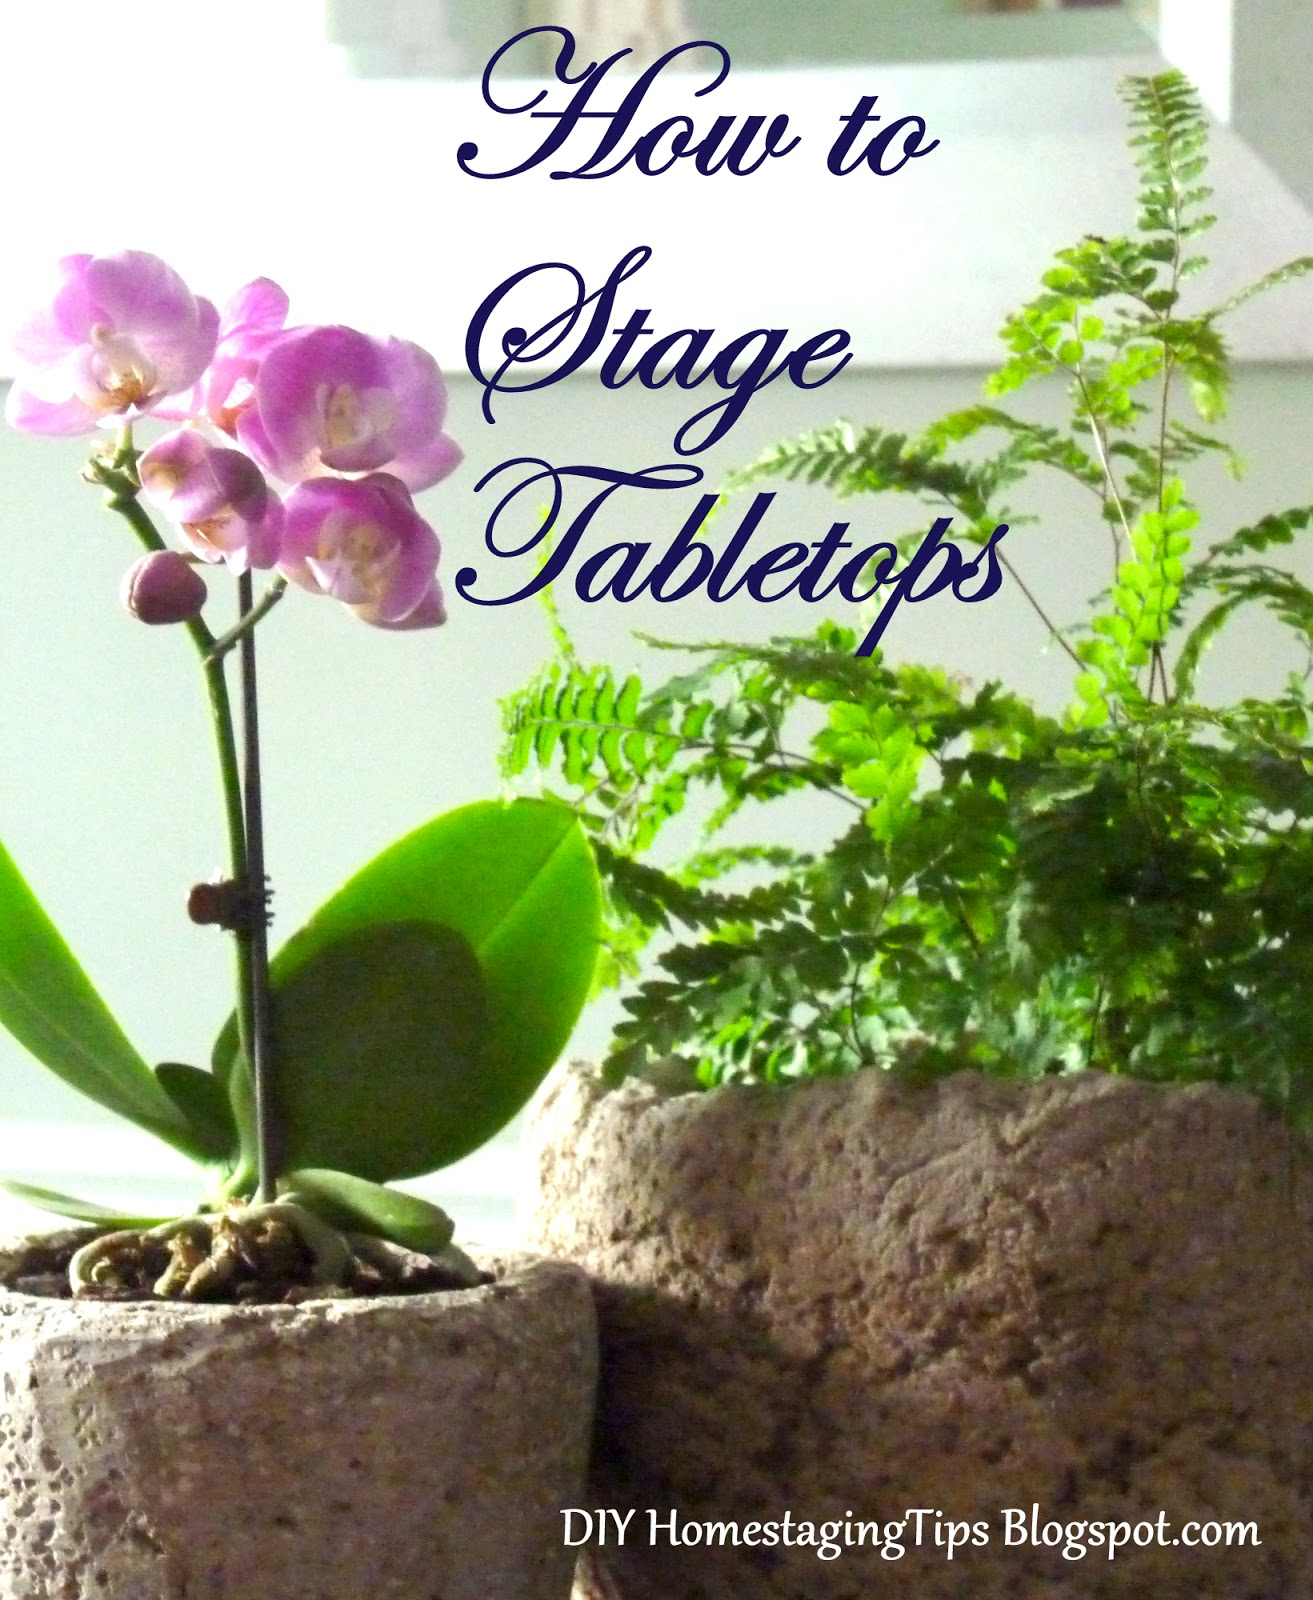 Diy home staging tips what makes a great tablescape for Diy home staging ideas